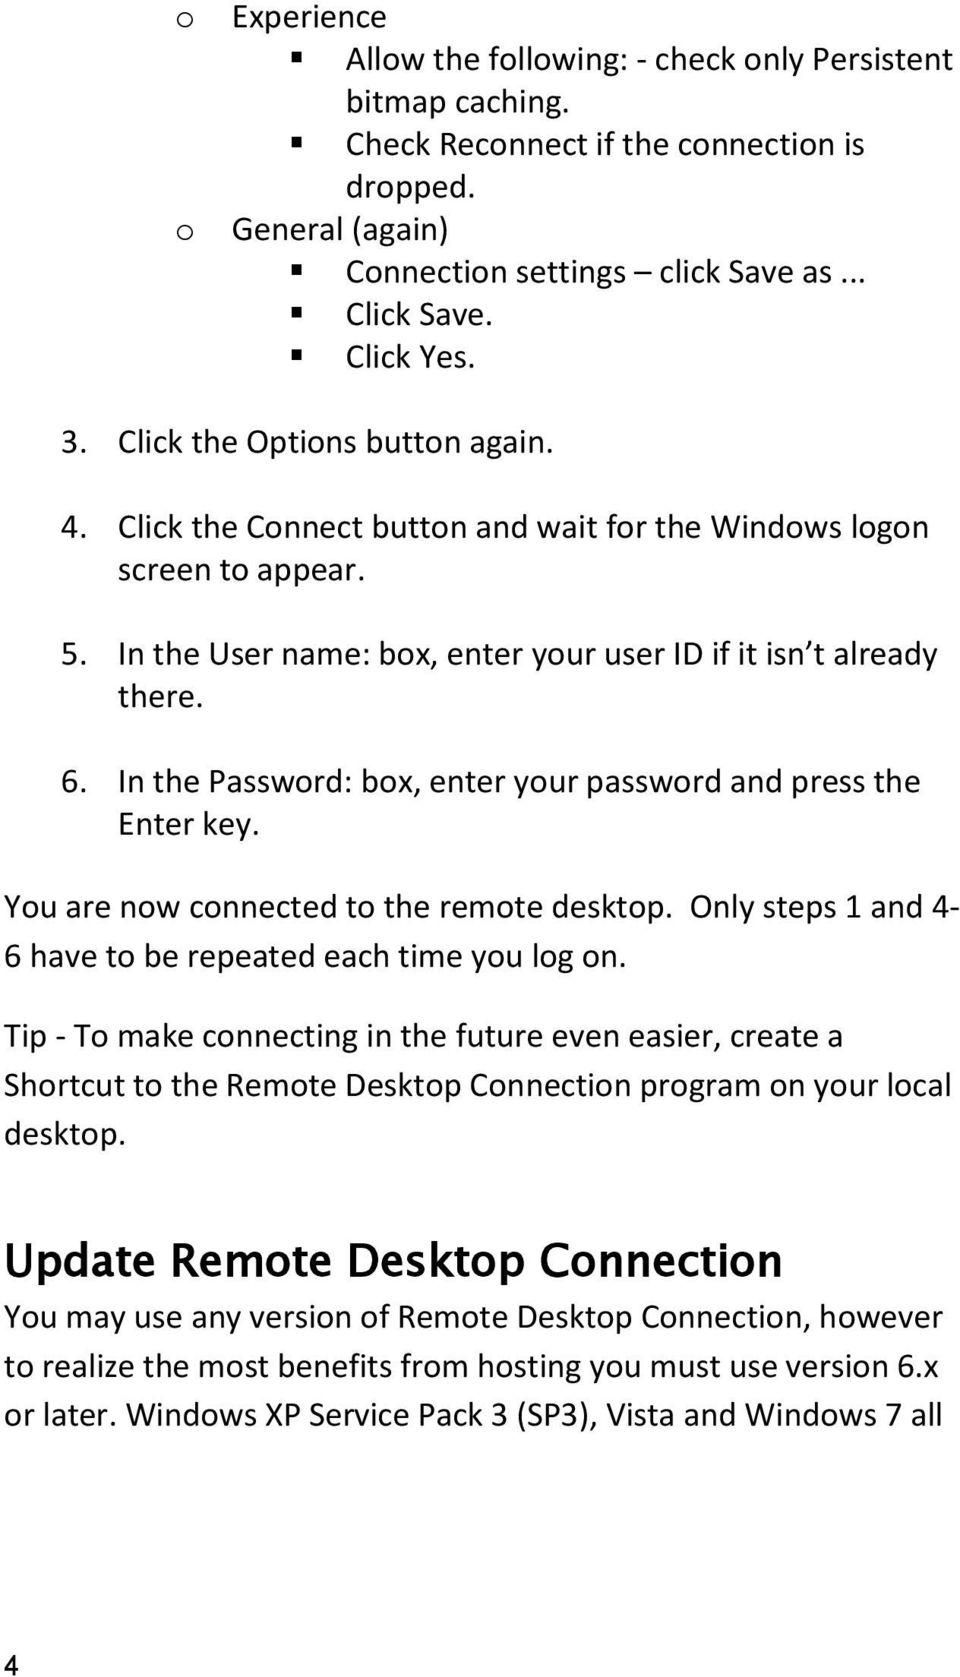 In the Password: box, enter your password and press the Enter key. You are now connected to the remote desktop. Only steps 1 and 4-6 have to be repeated each time you log on.